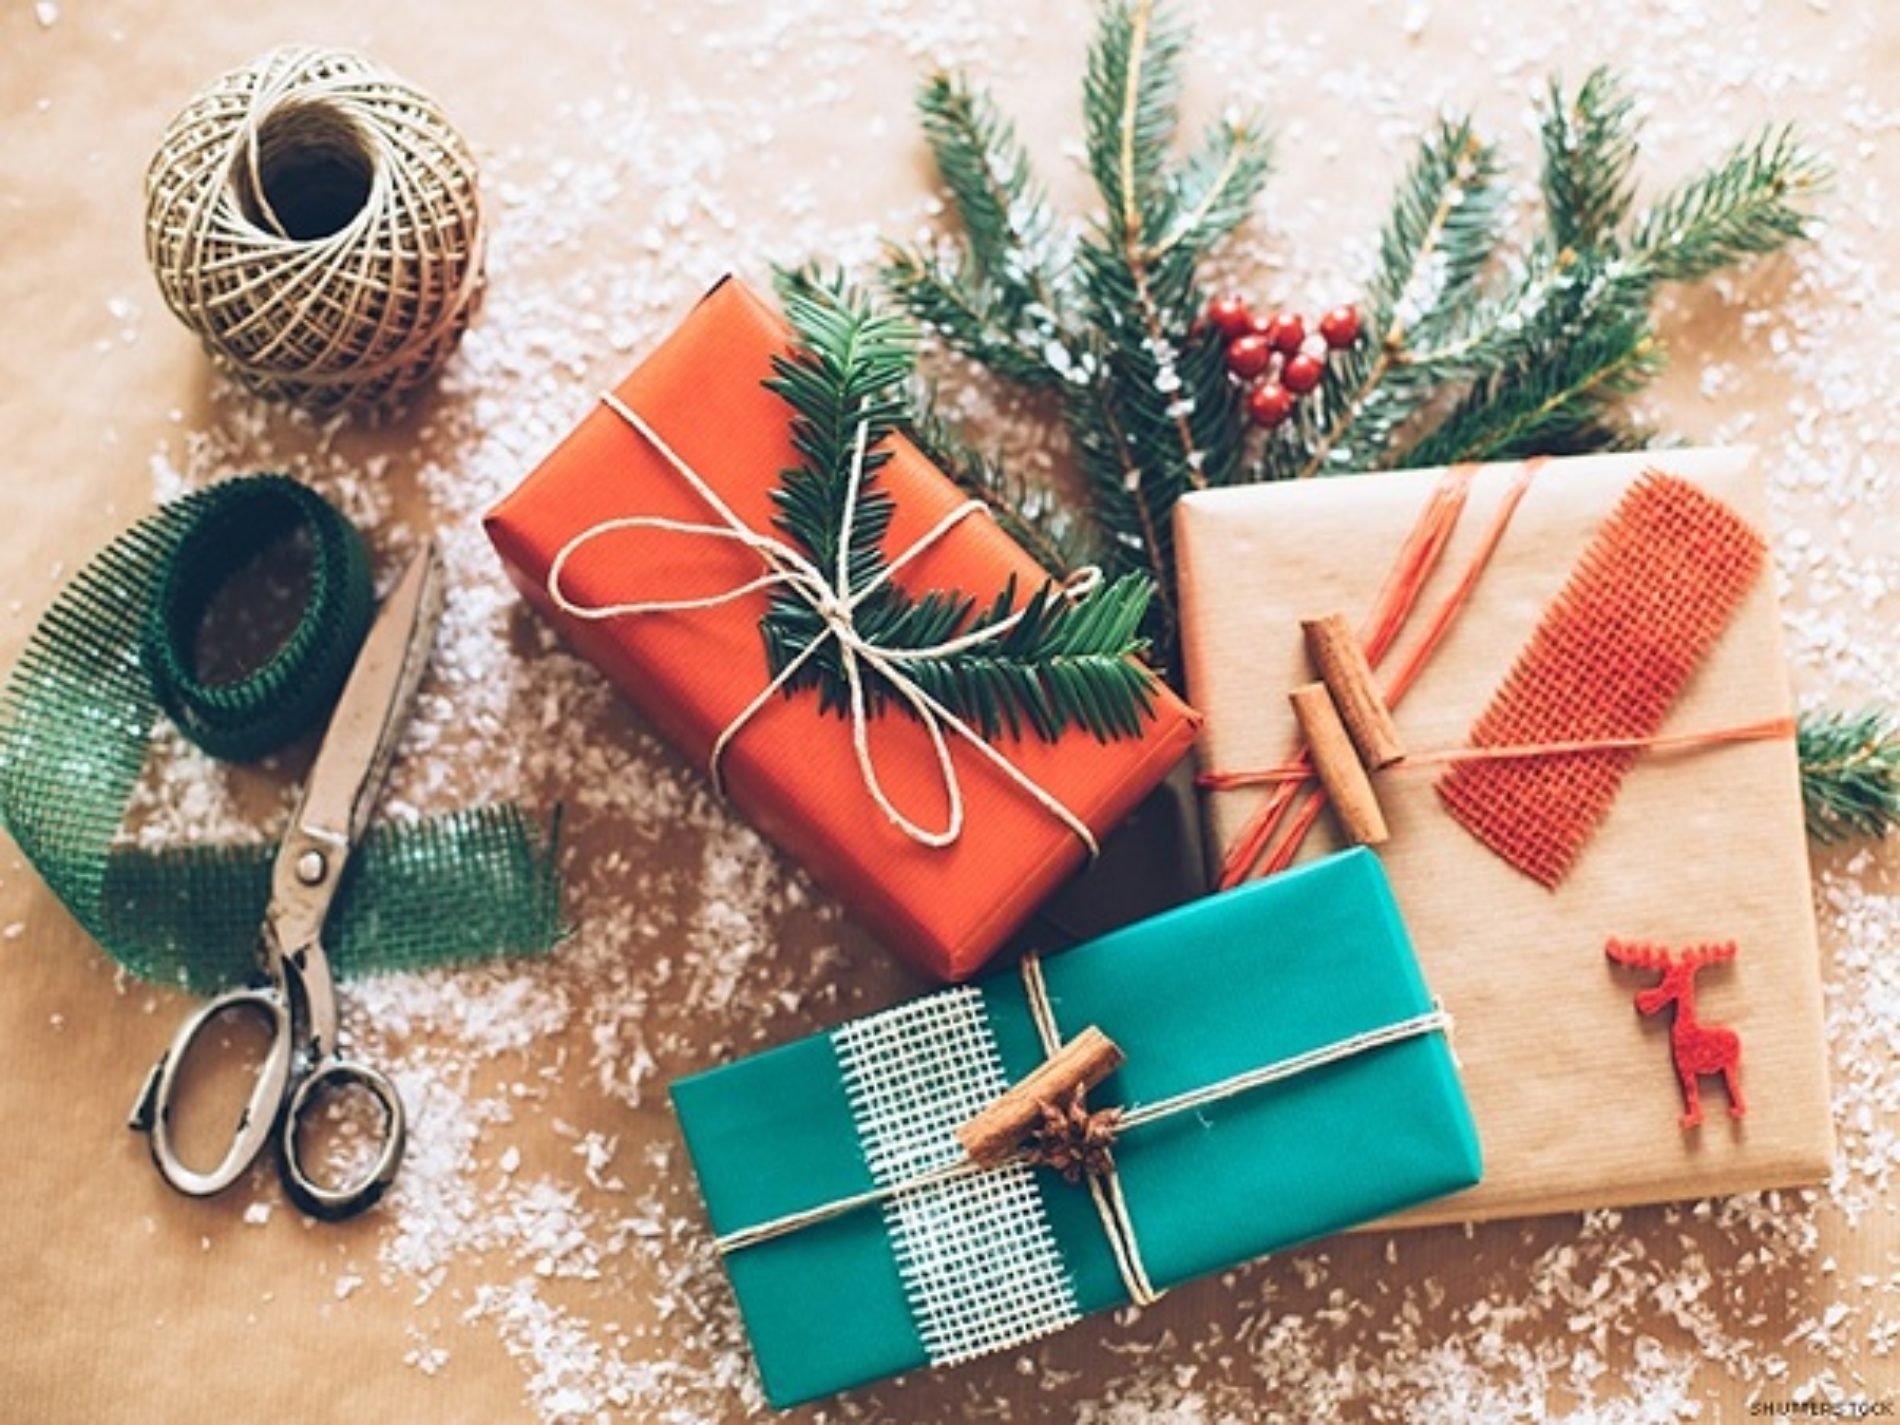 THE GIFTS THAT KEEP ON GIVING